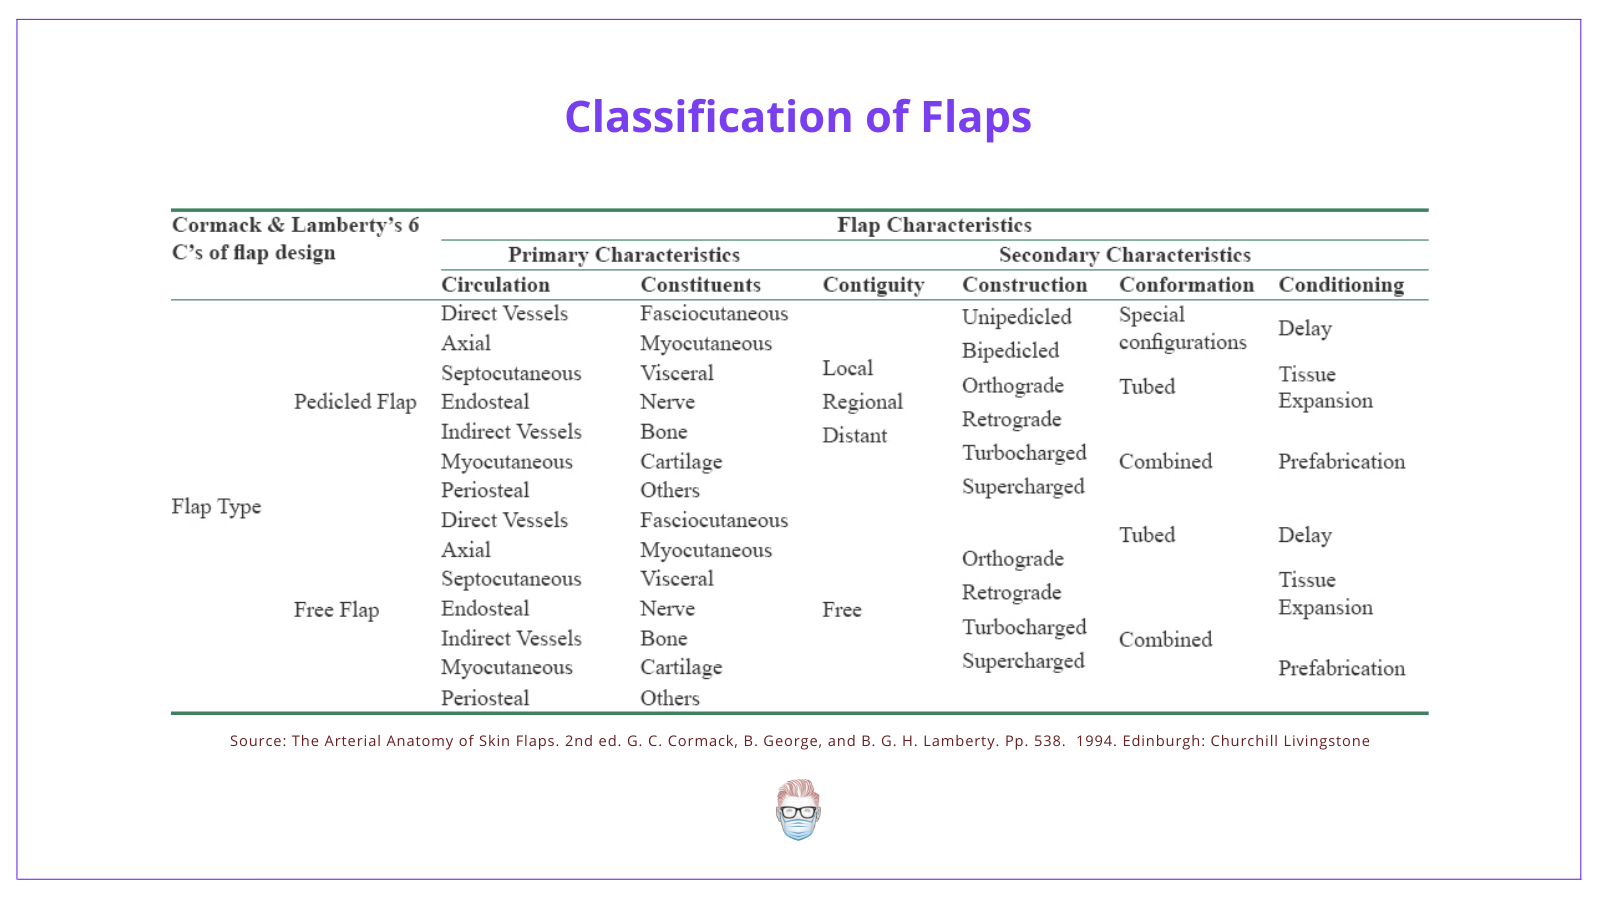 Types of Flaps and their classification (fasciocutaneous flaps, myocutaneous flaps, local flaps, regional flaps, distant flaps, free flaps)